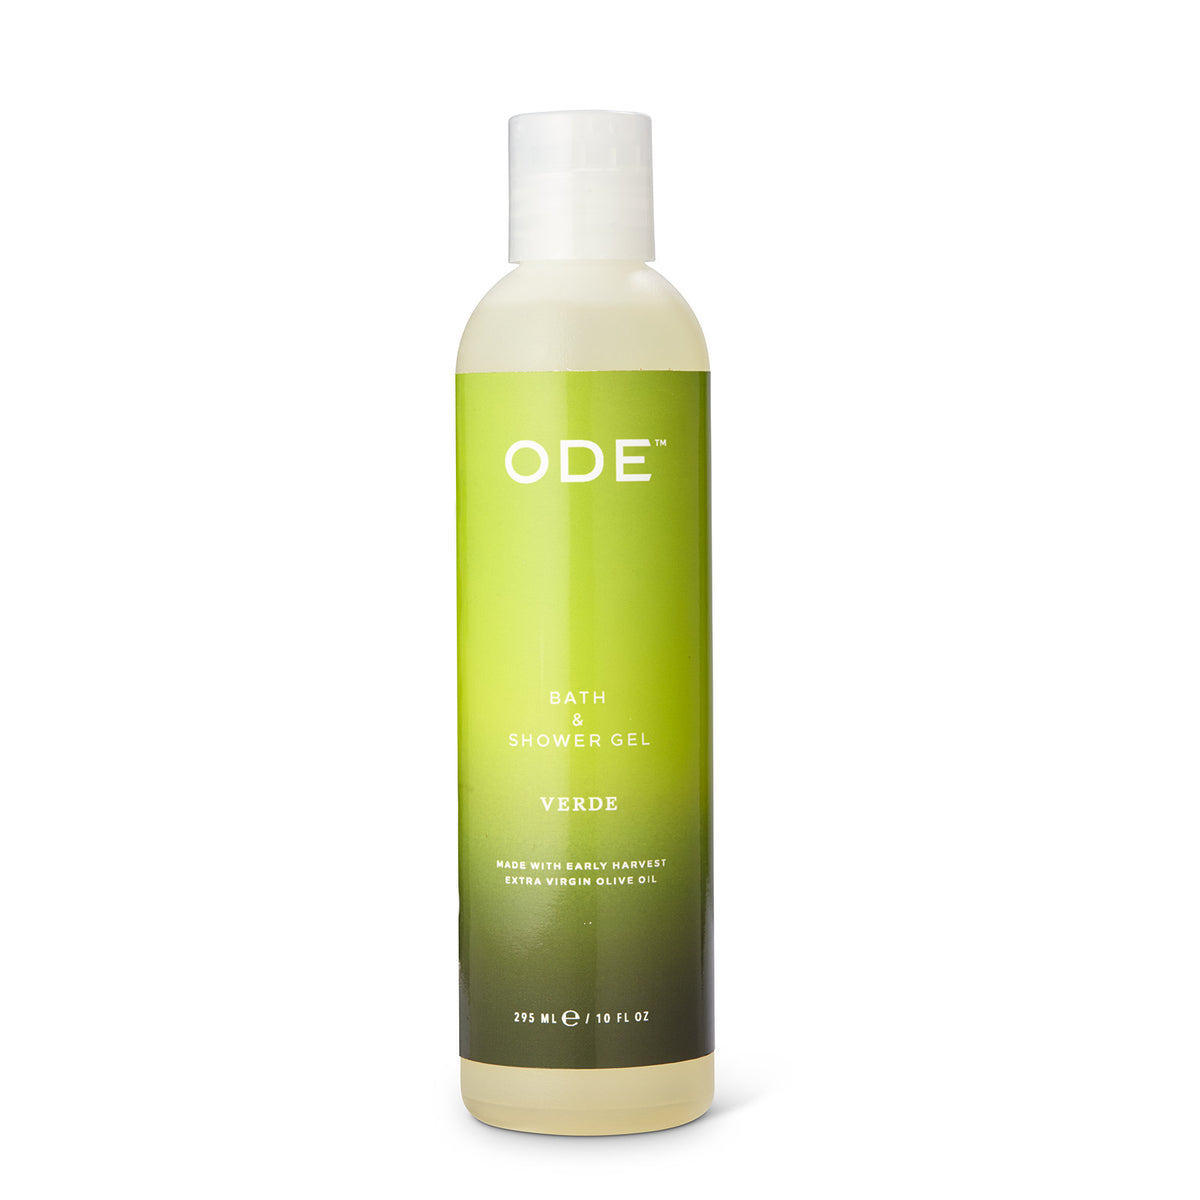 Verde Bath and Shower Gel 8 oz